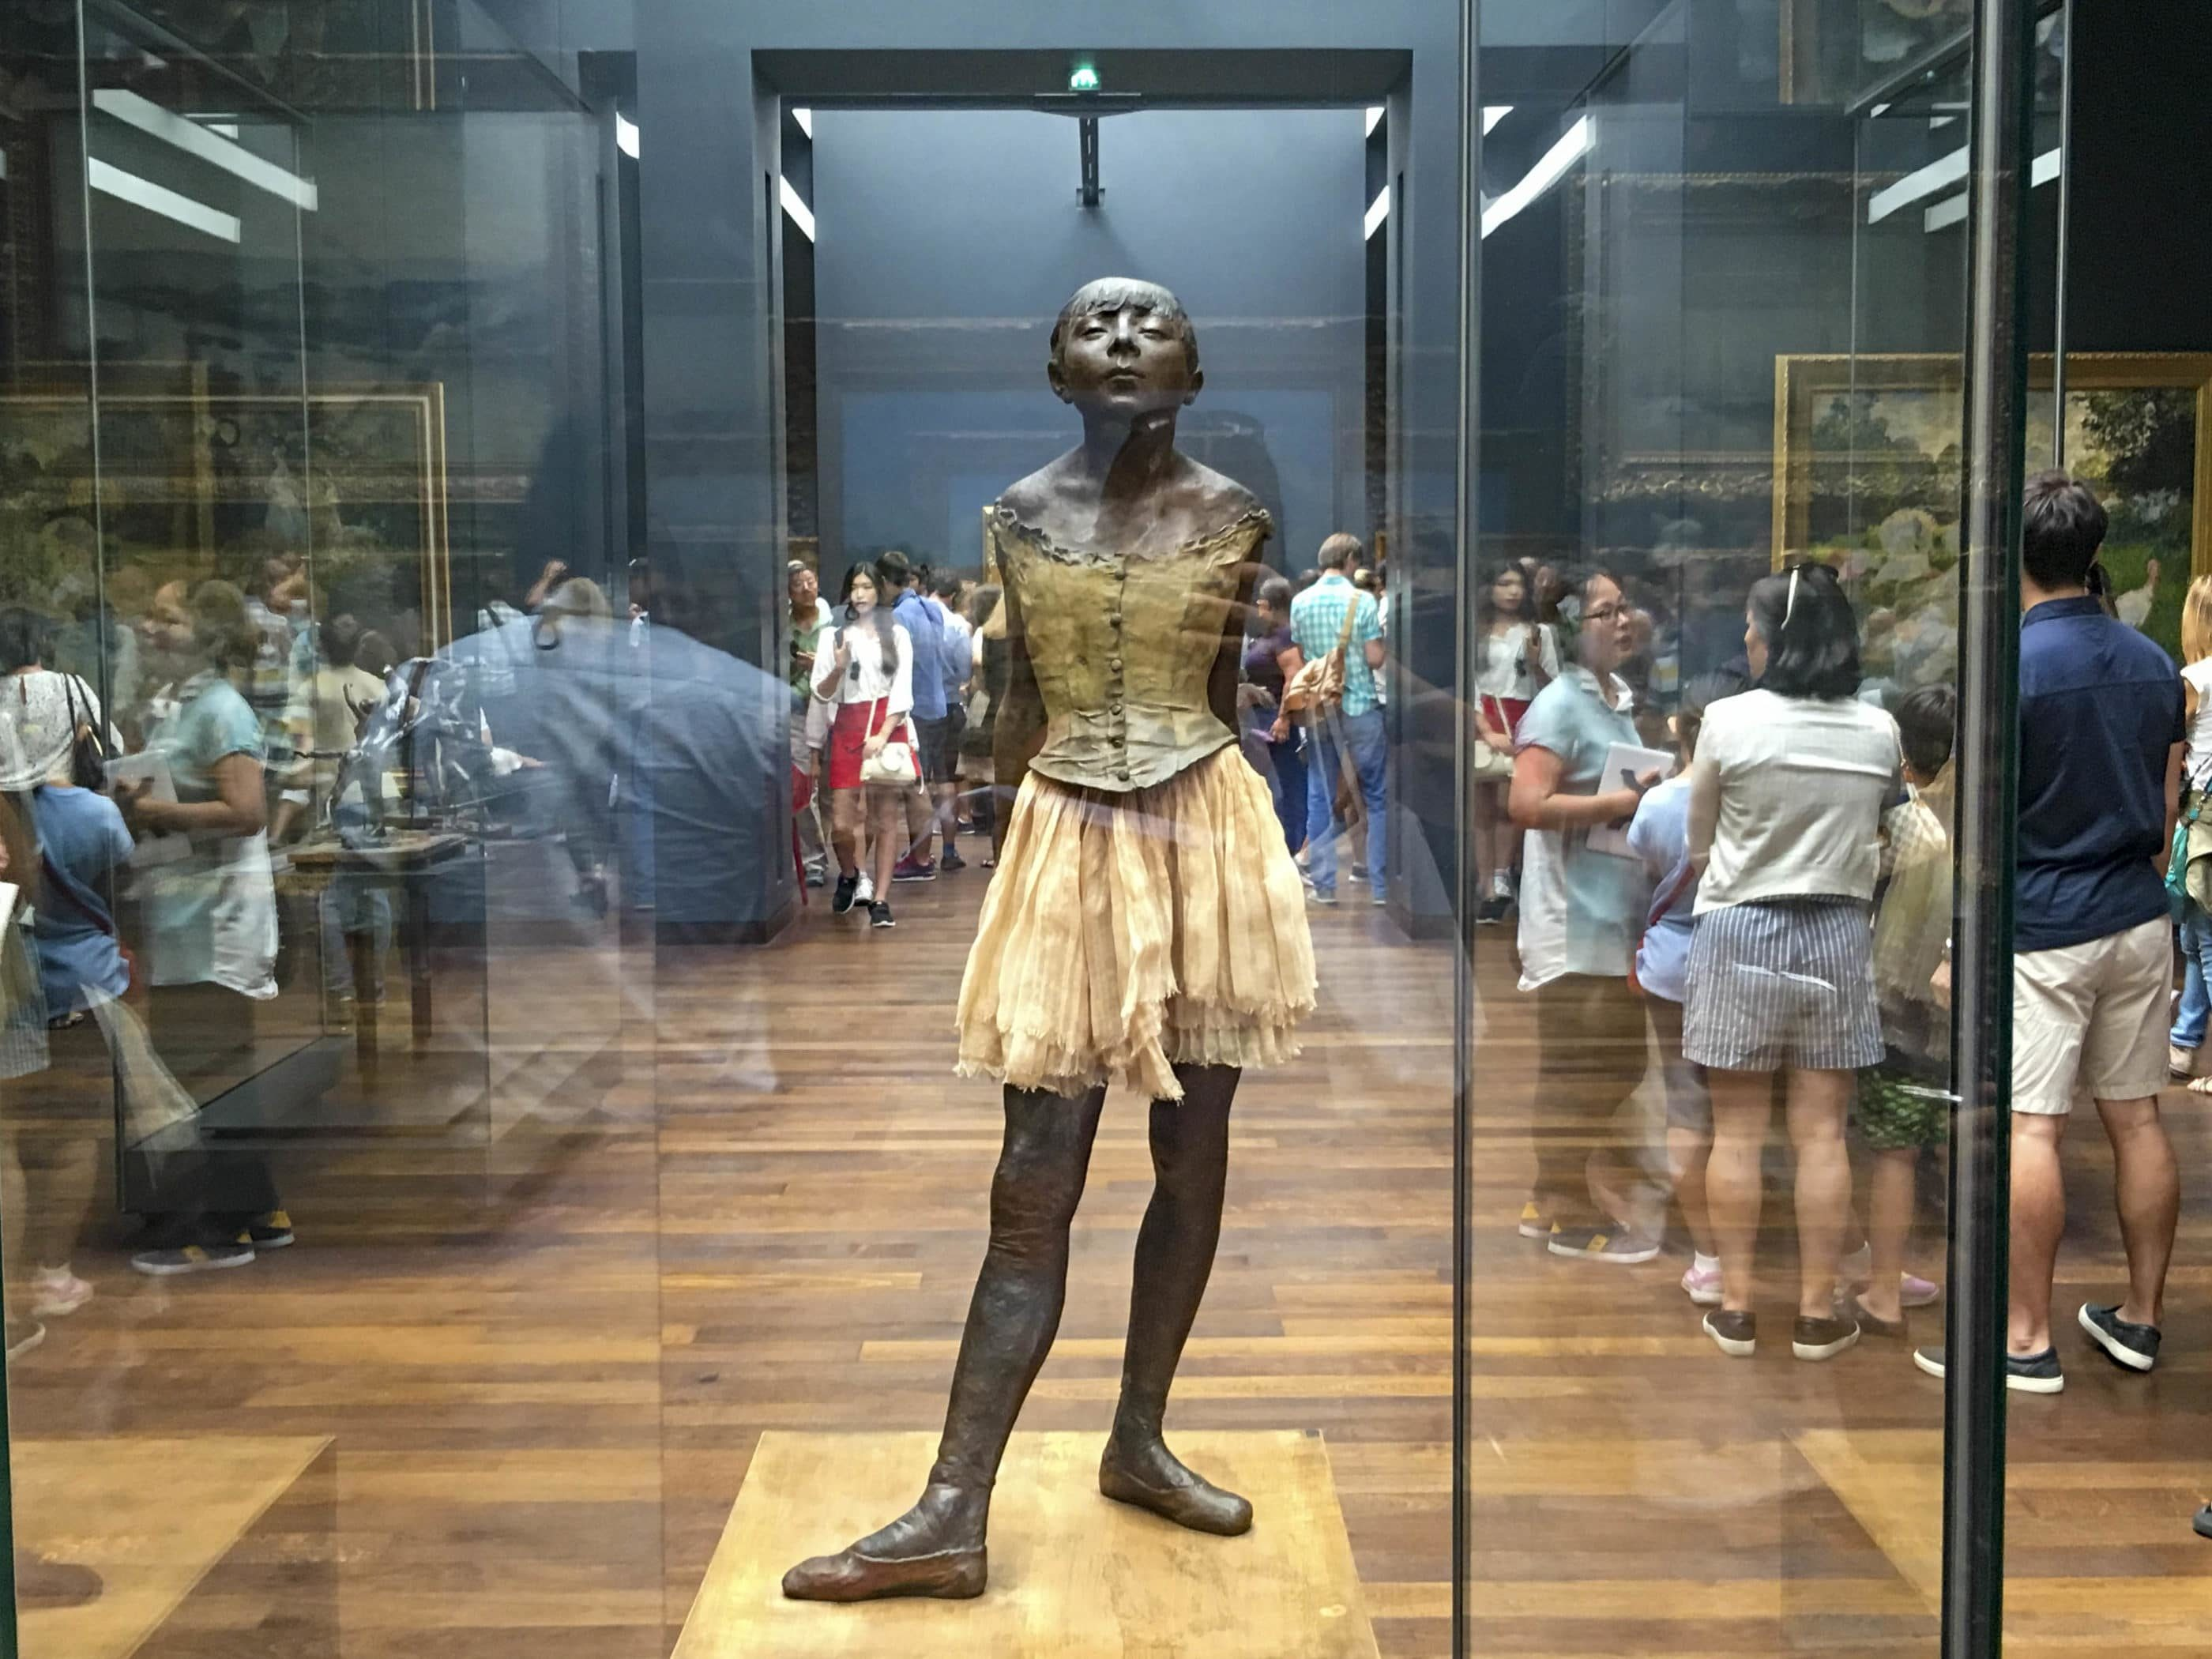 The Small Dancer Aged 14 statue inside glass at Musee d'Orsay